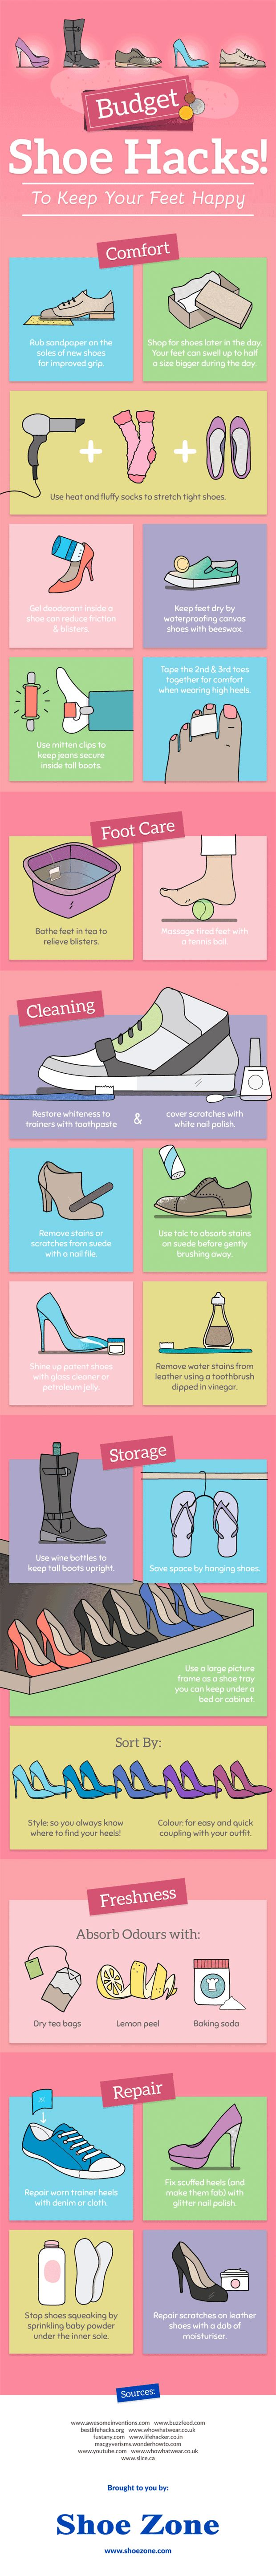 Infographic: Shoe Hacks for Happy Feet